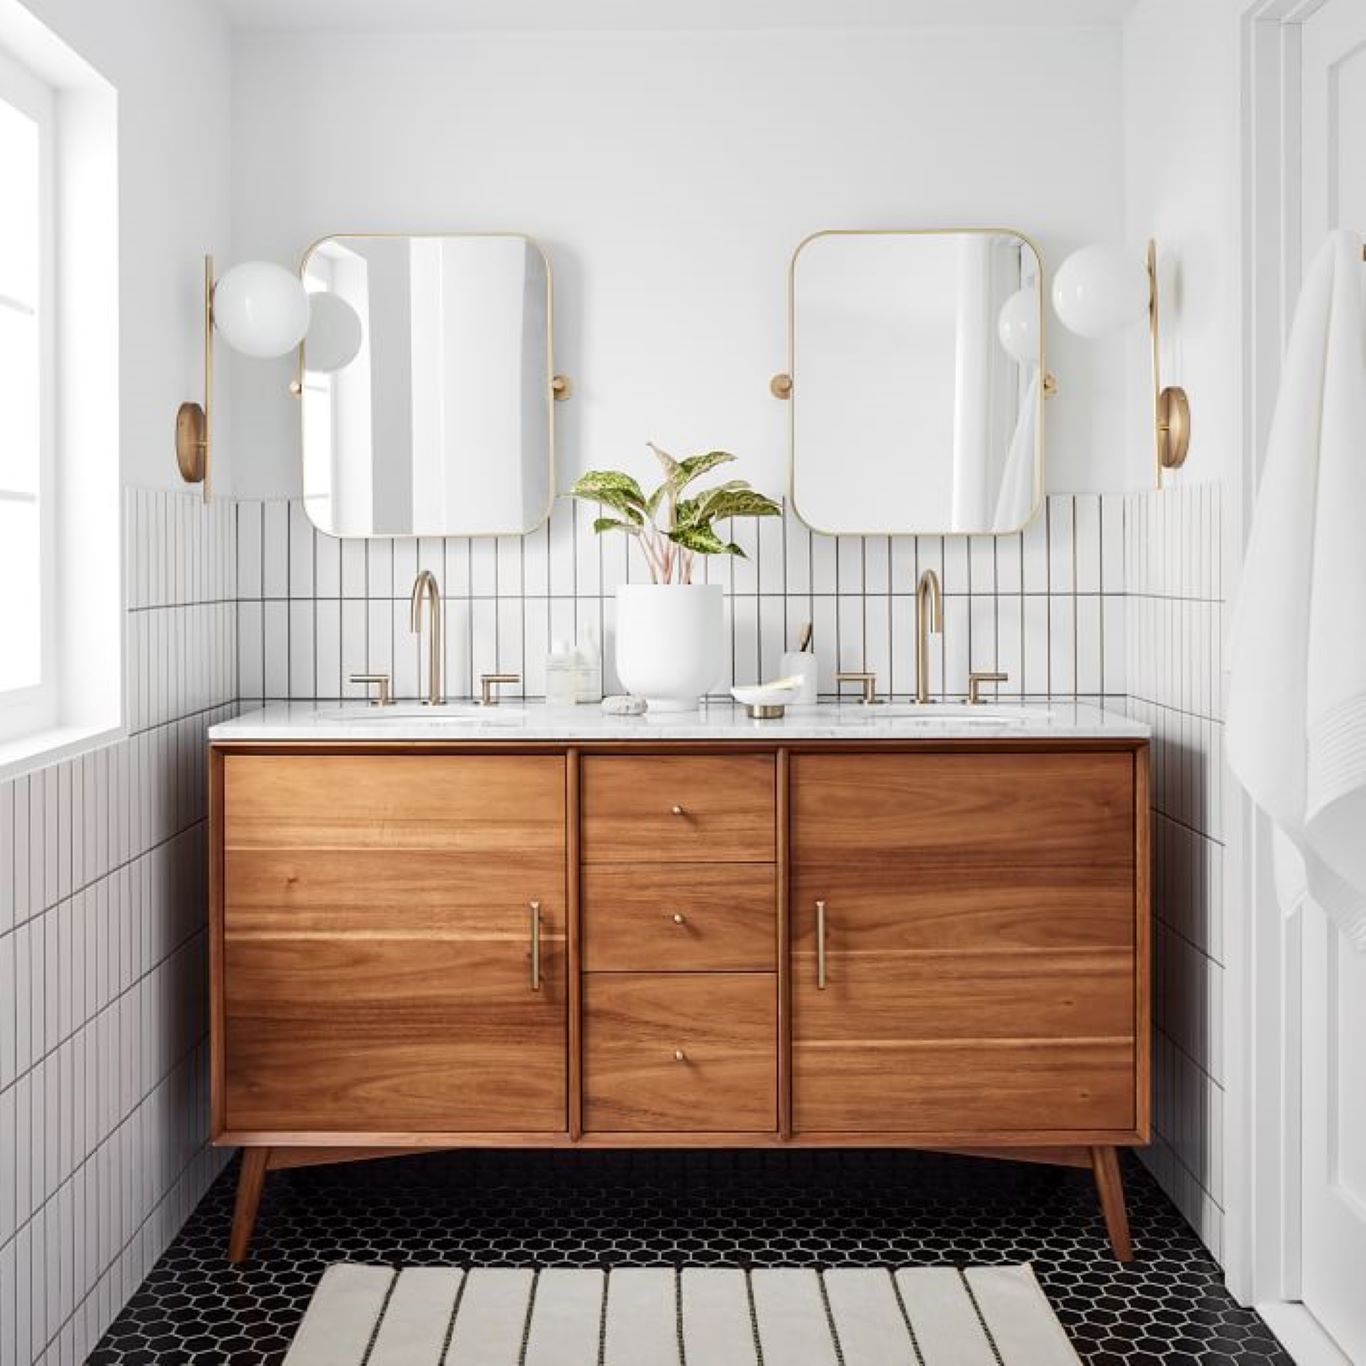 White bathroom matched with wood finishes and a brick walled shower